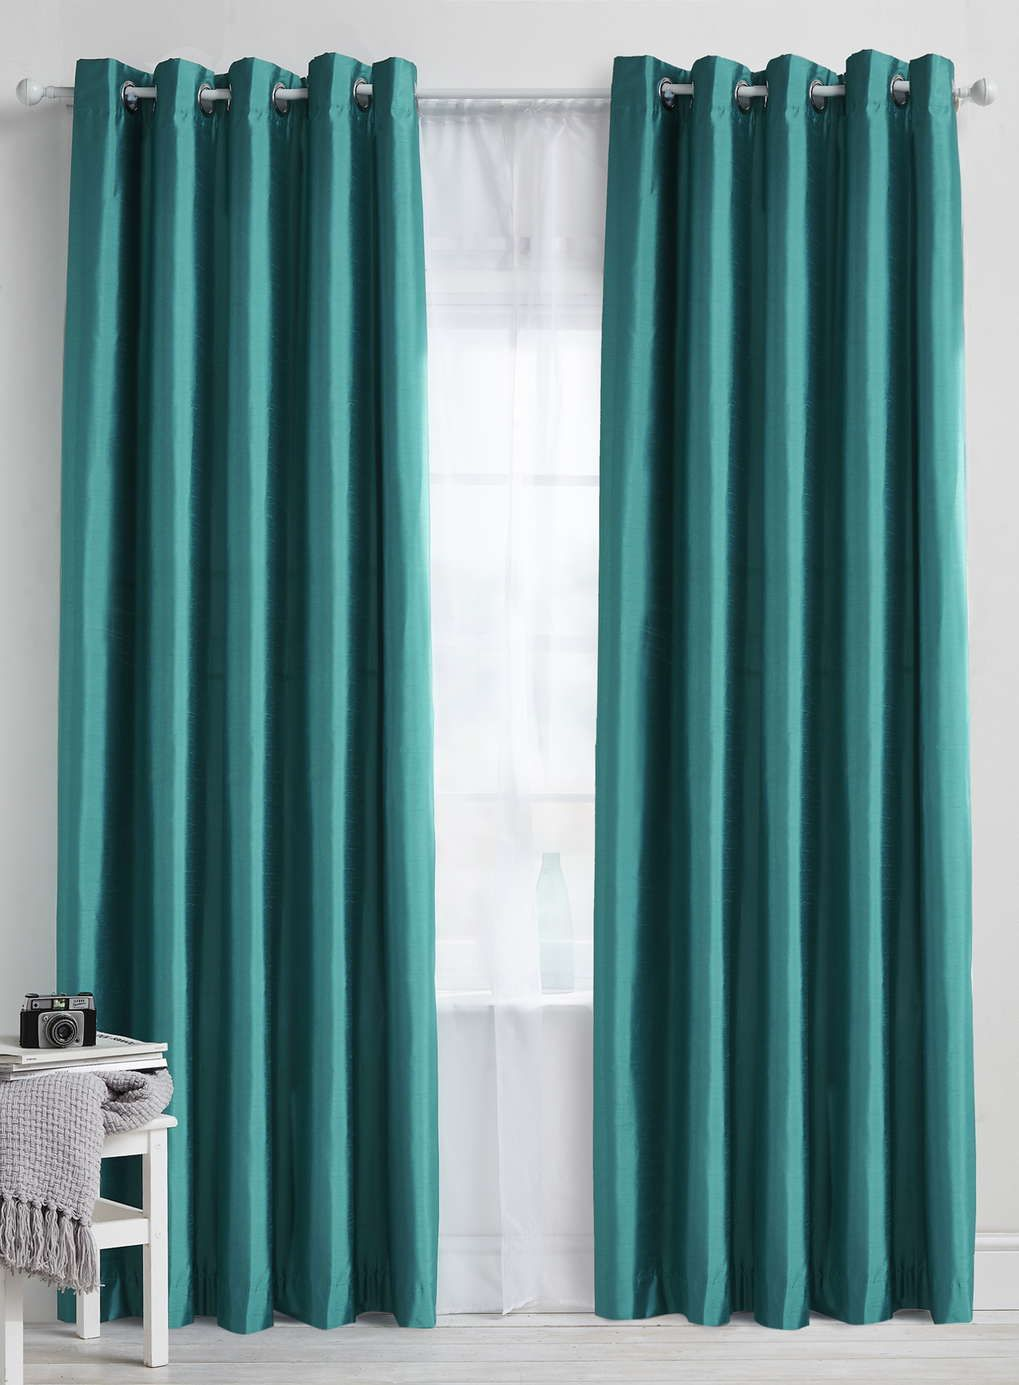 Teal Plain Faux Silk Blackout Thermal Eyelet Curtain BHS Curtains Pinte